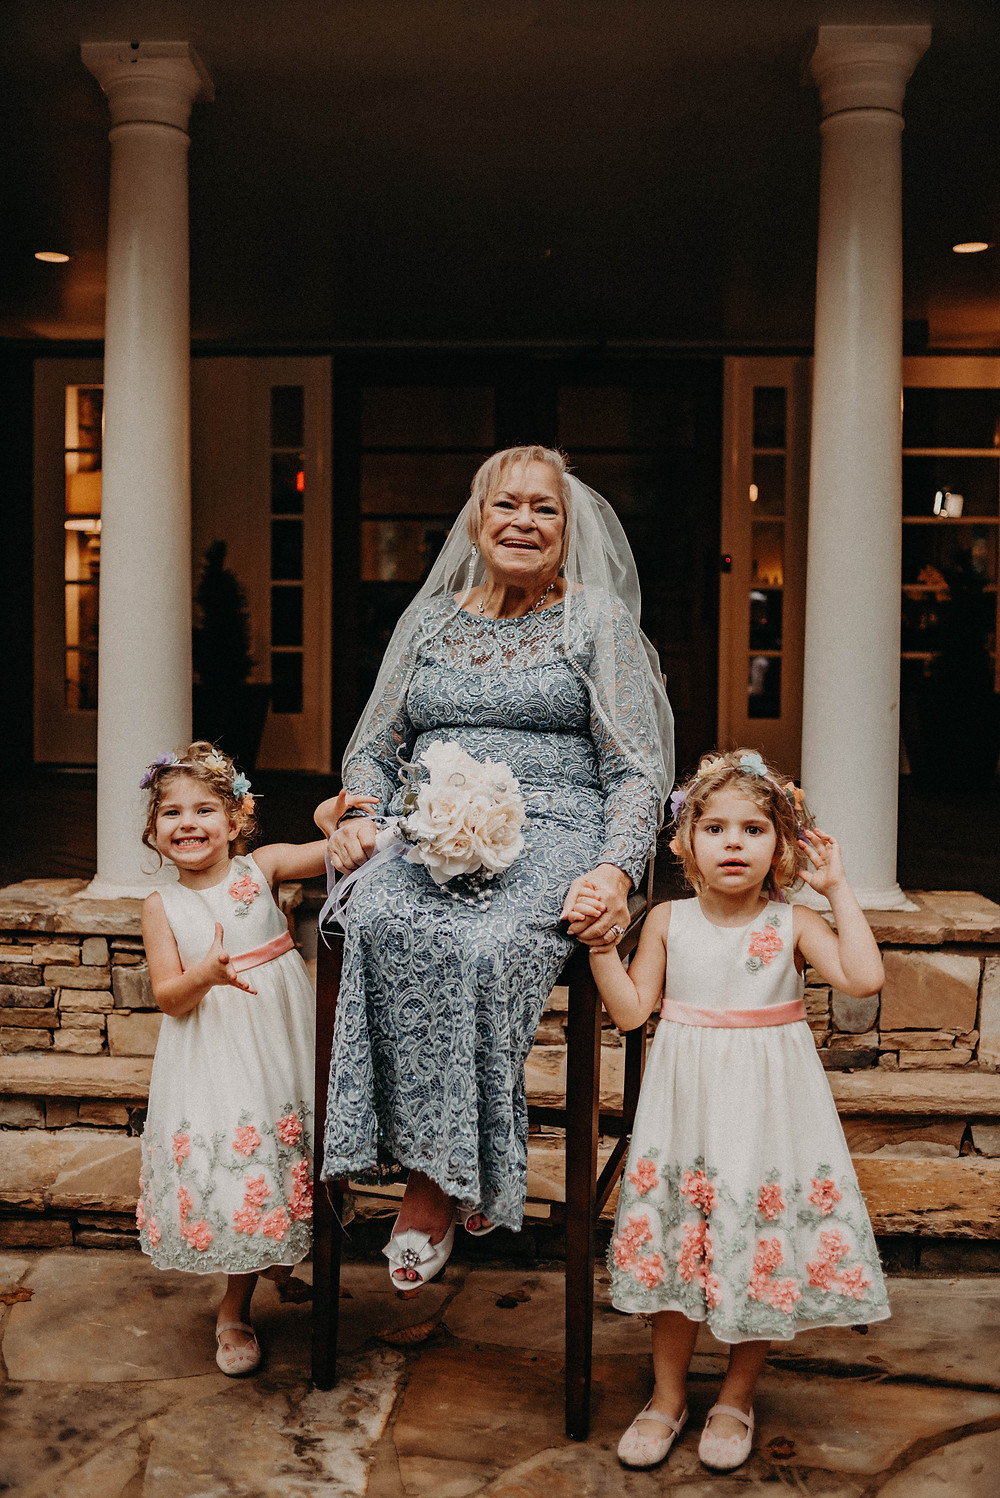 Elder bride with her two grandaughters at her wedding